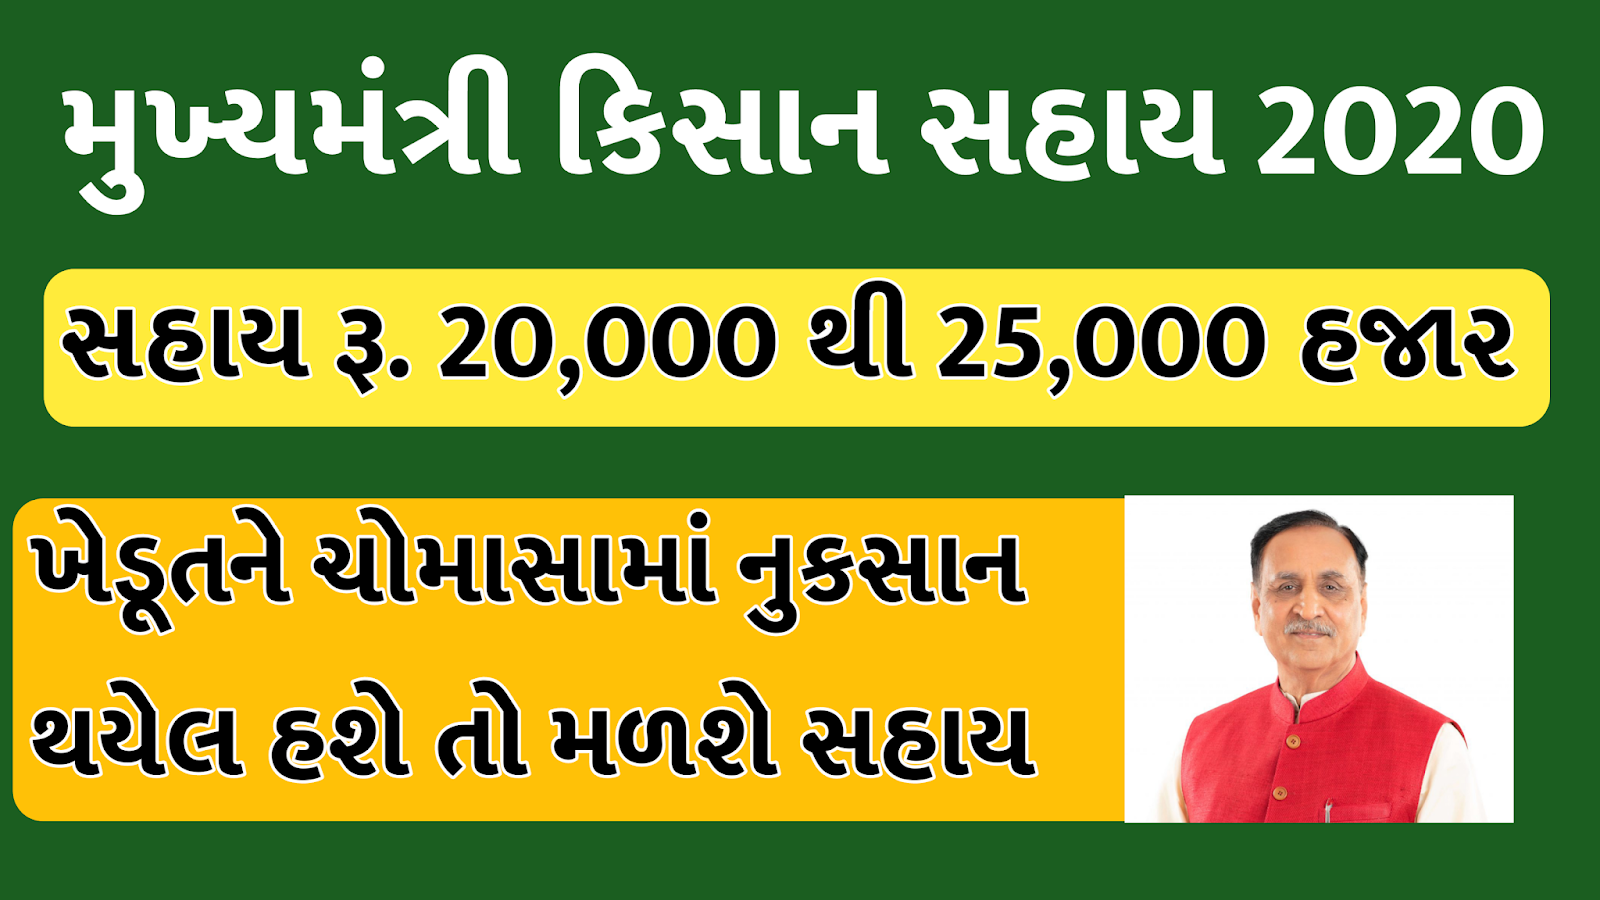 Mukhyamantri Kisan Sahay Yojana Gujarat Farmer Registration 2020 Kharif Online Application